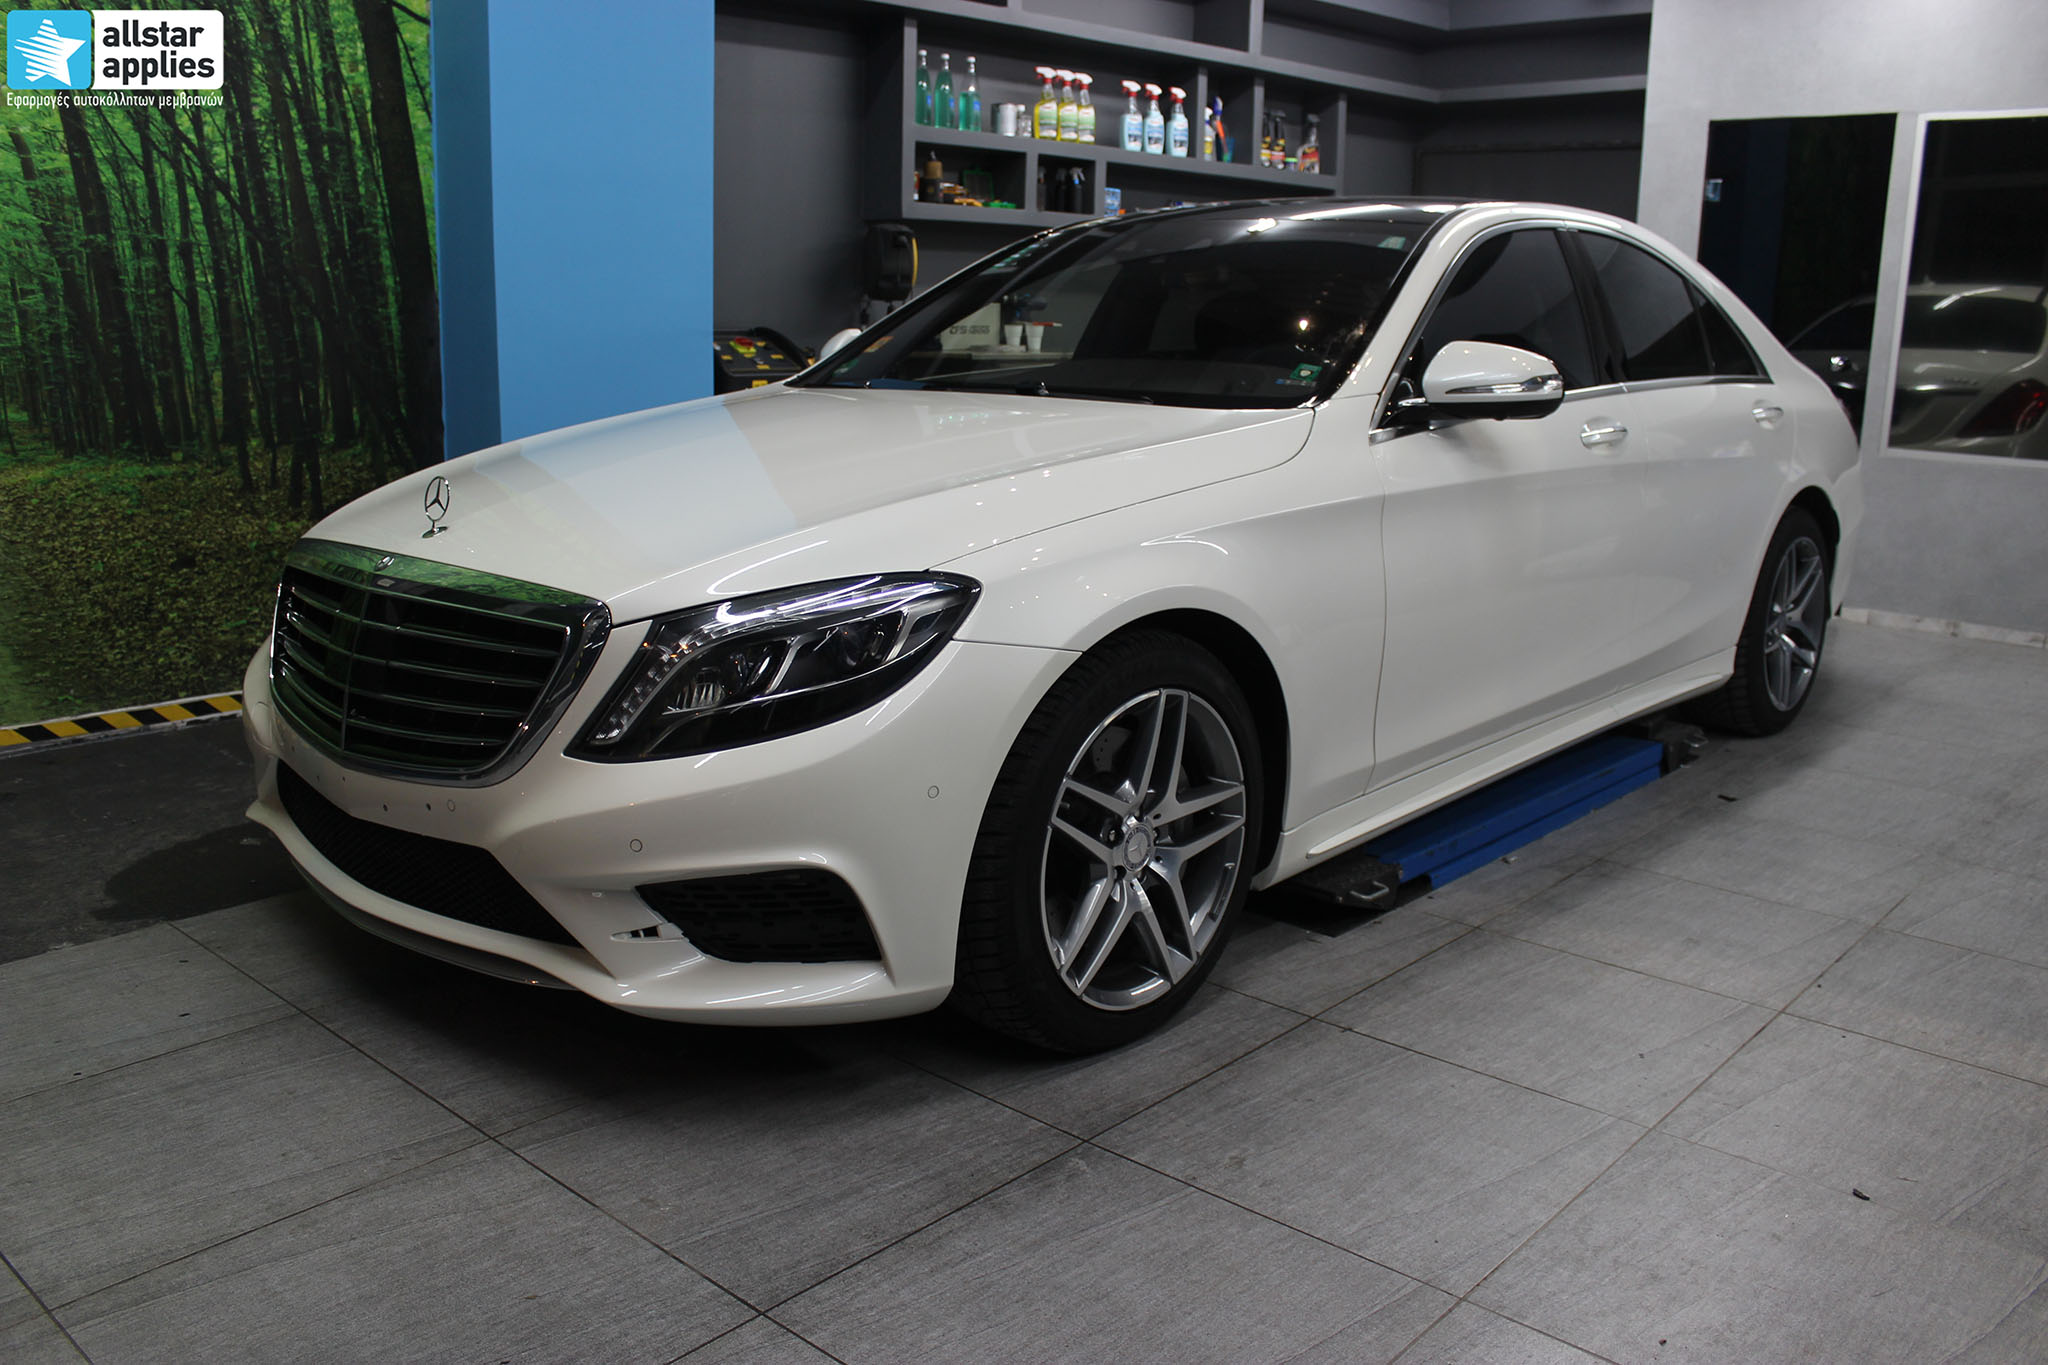 Mercedes S500 AMG - Paint Protection Film (1)